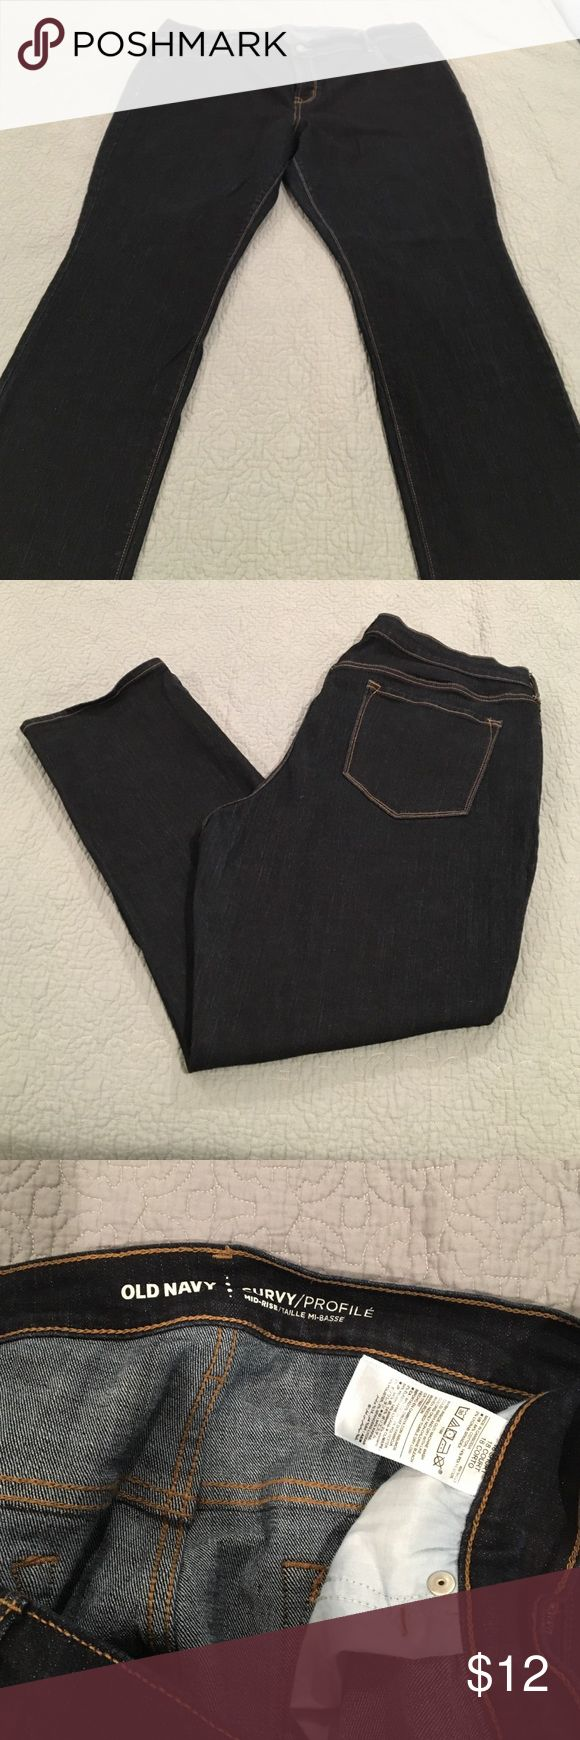 Worn once old navy jeans size 18 short Worn once • too big for me • old navy • curvy jeans • old navy • dark blue • size 18 short Old Navy Jeans